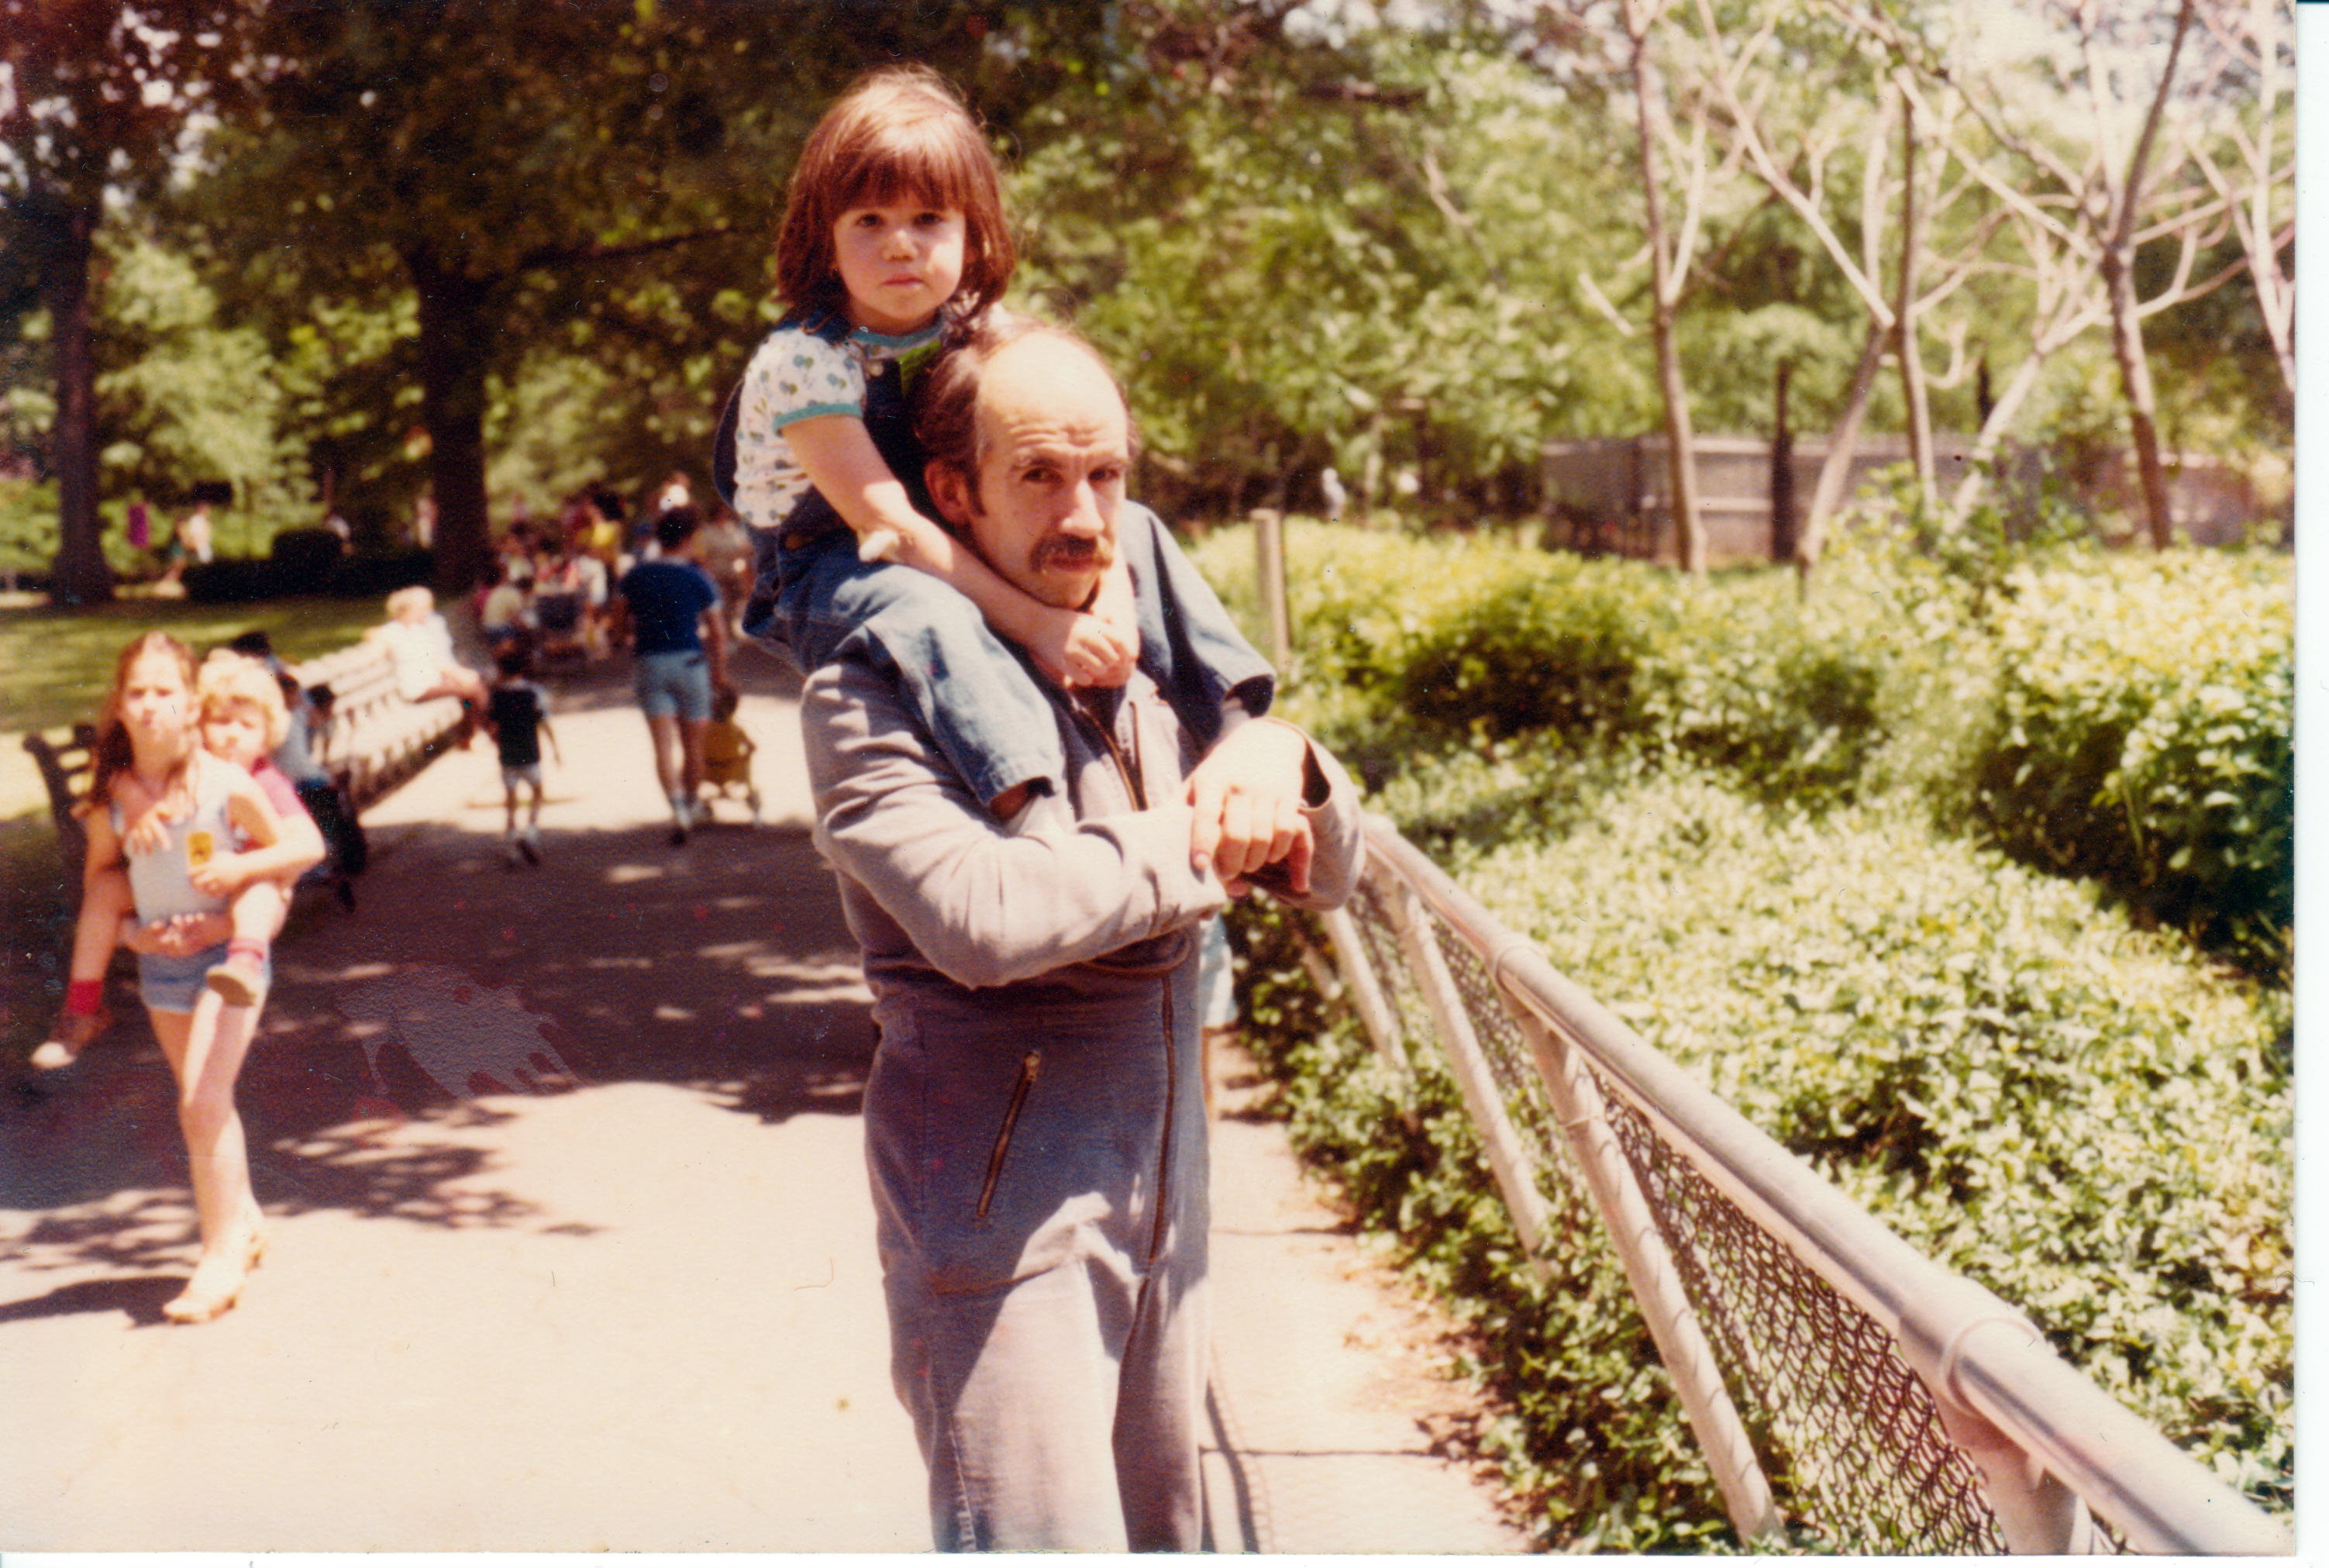 An old photo of a young Alex sitting on her dad's shoulders. They are standing on a bridge in Caracas, surrounded by bushes and the like.